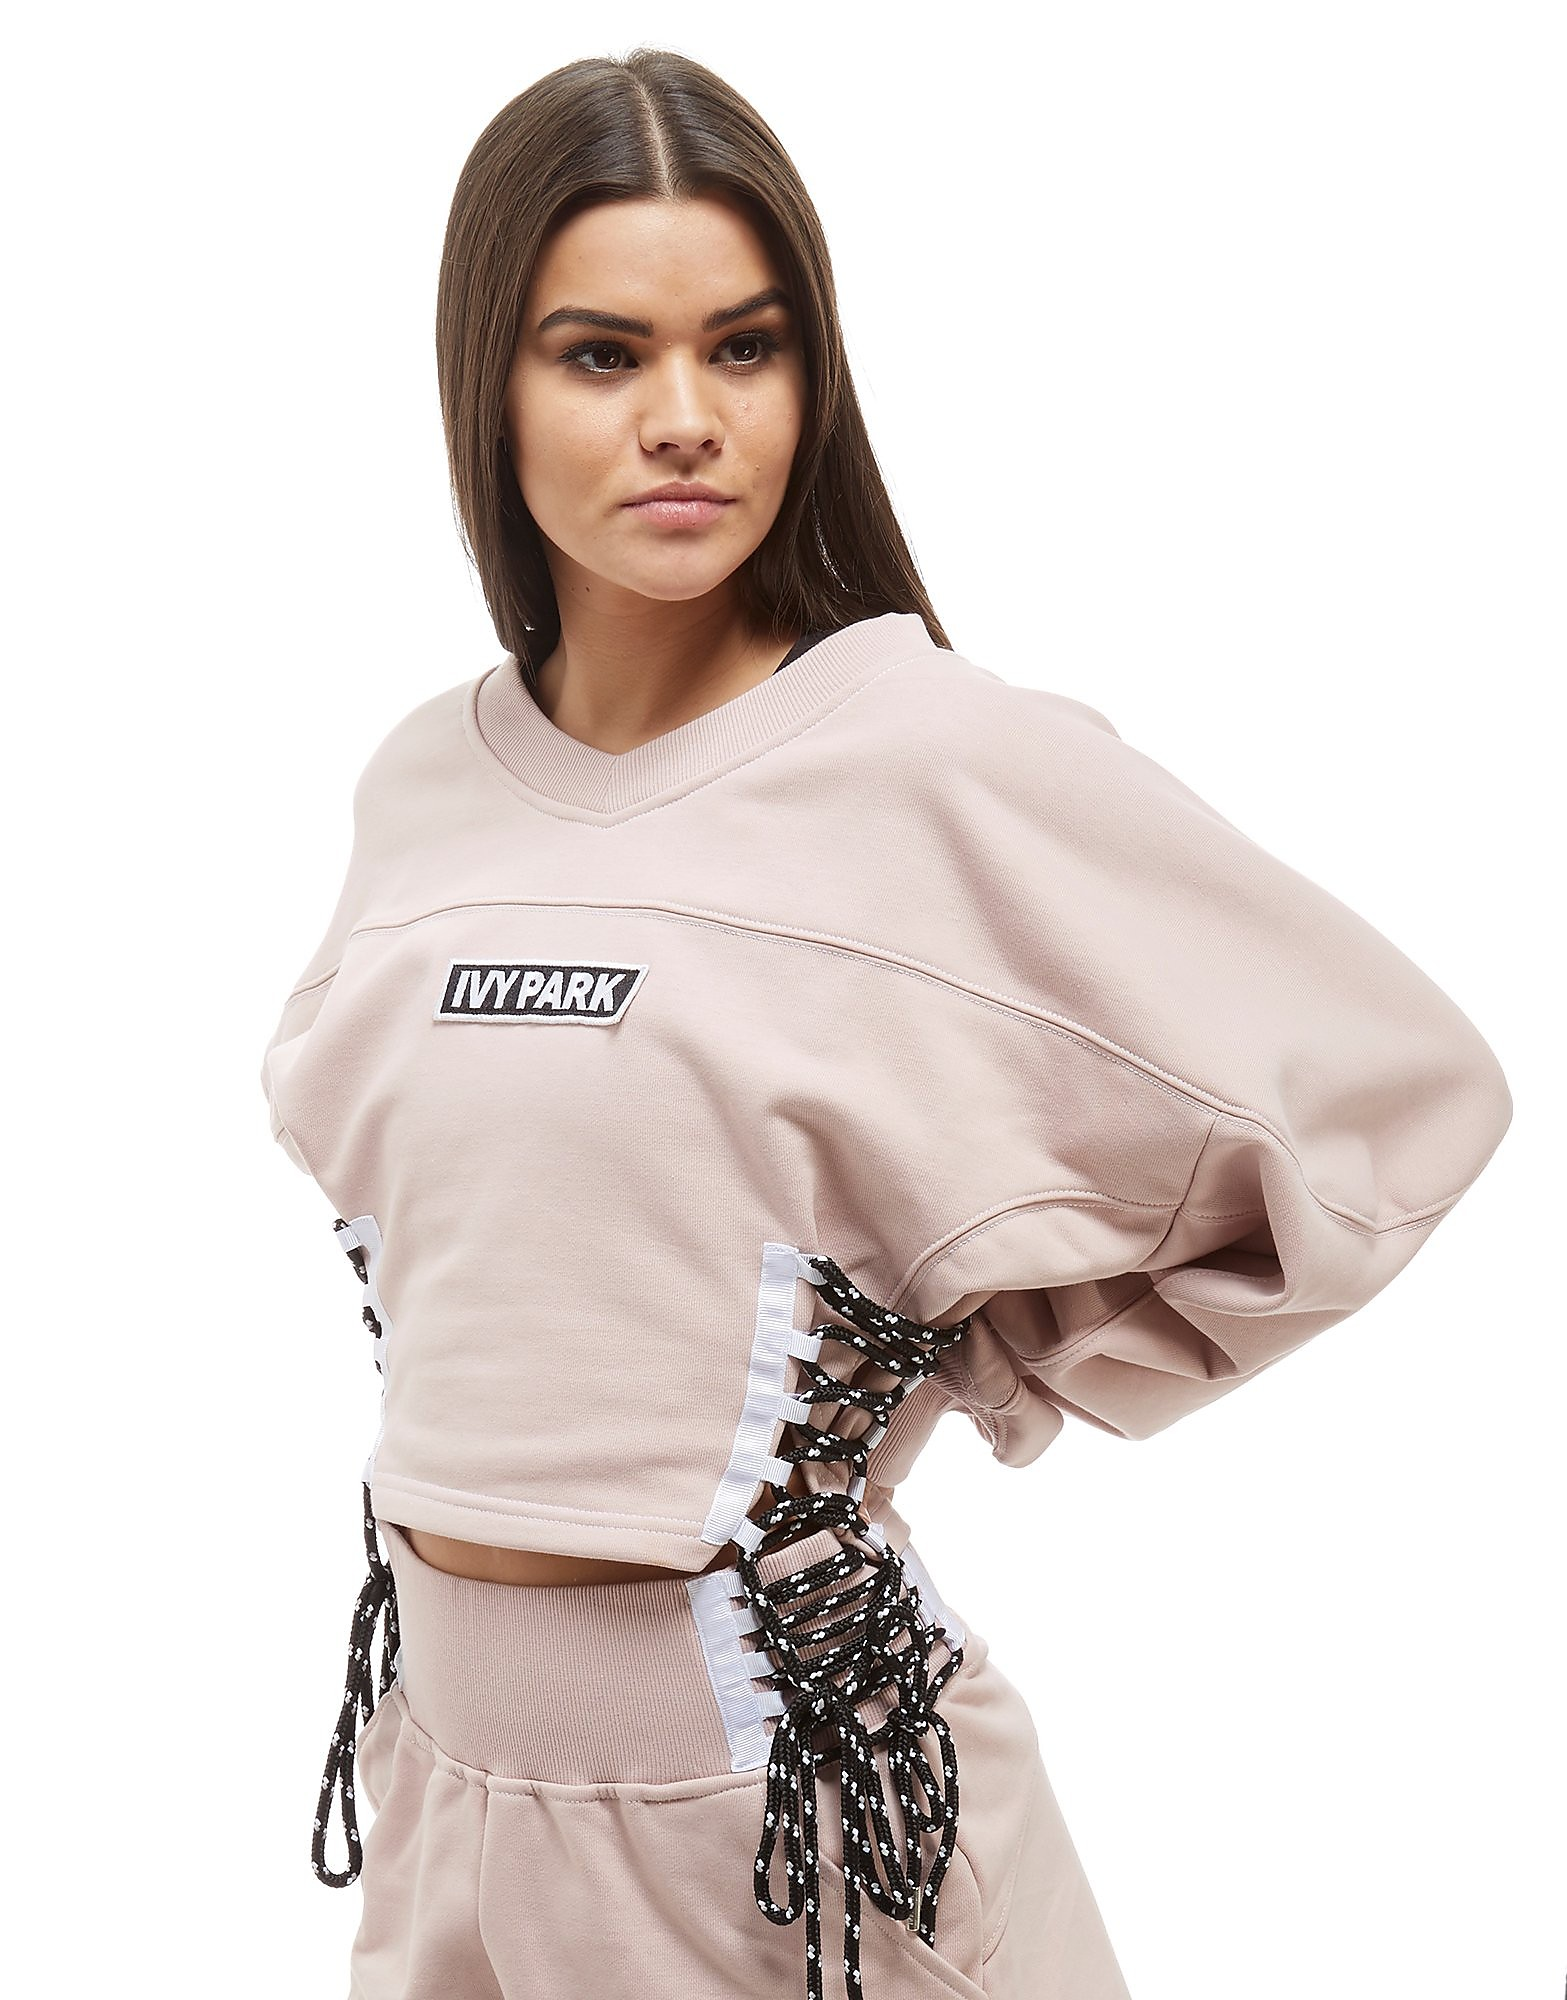 IVY PARK Lace Up Crew Sweatshirt